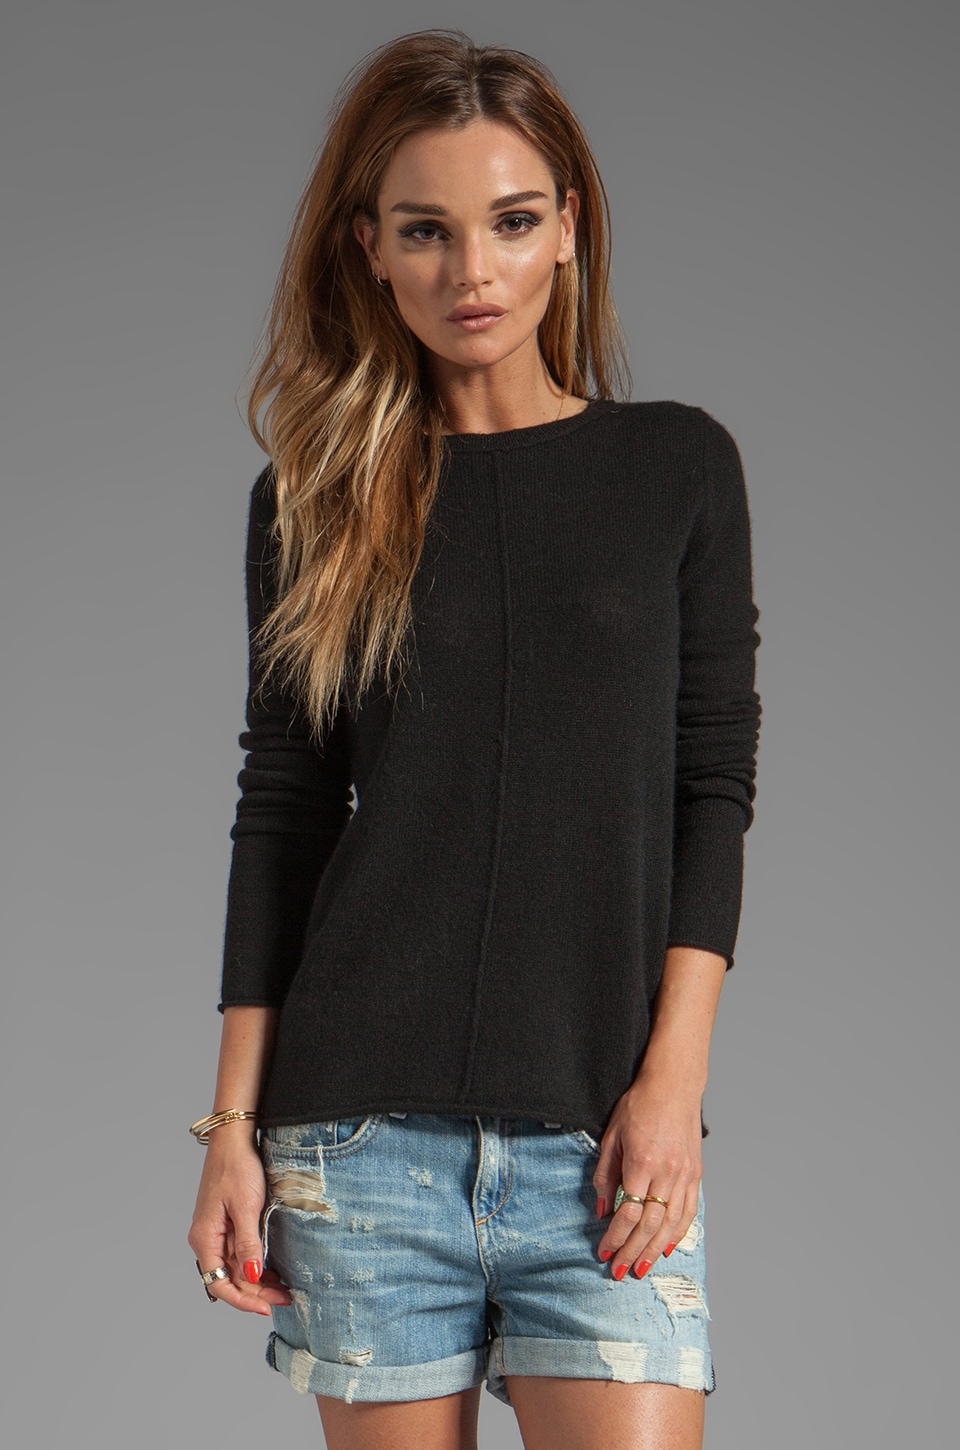 360 Sweater Bree Cashmere Pullover in Black